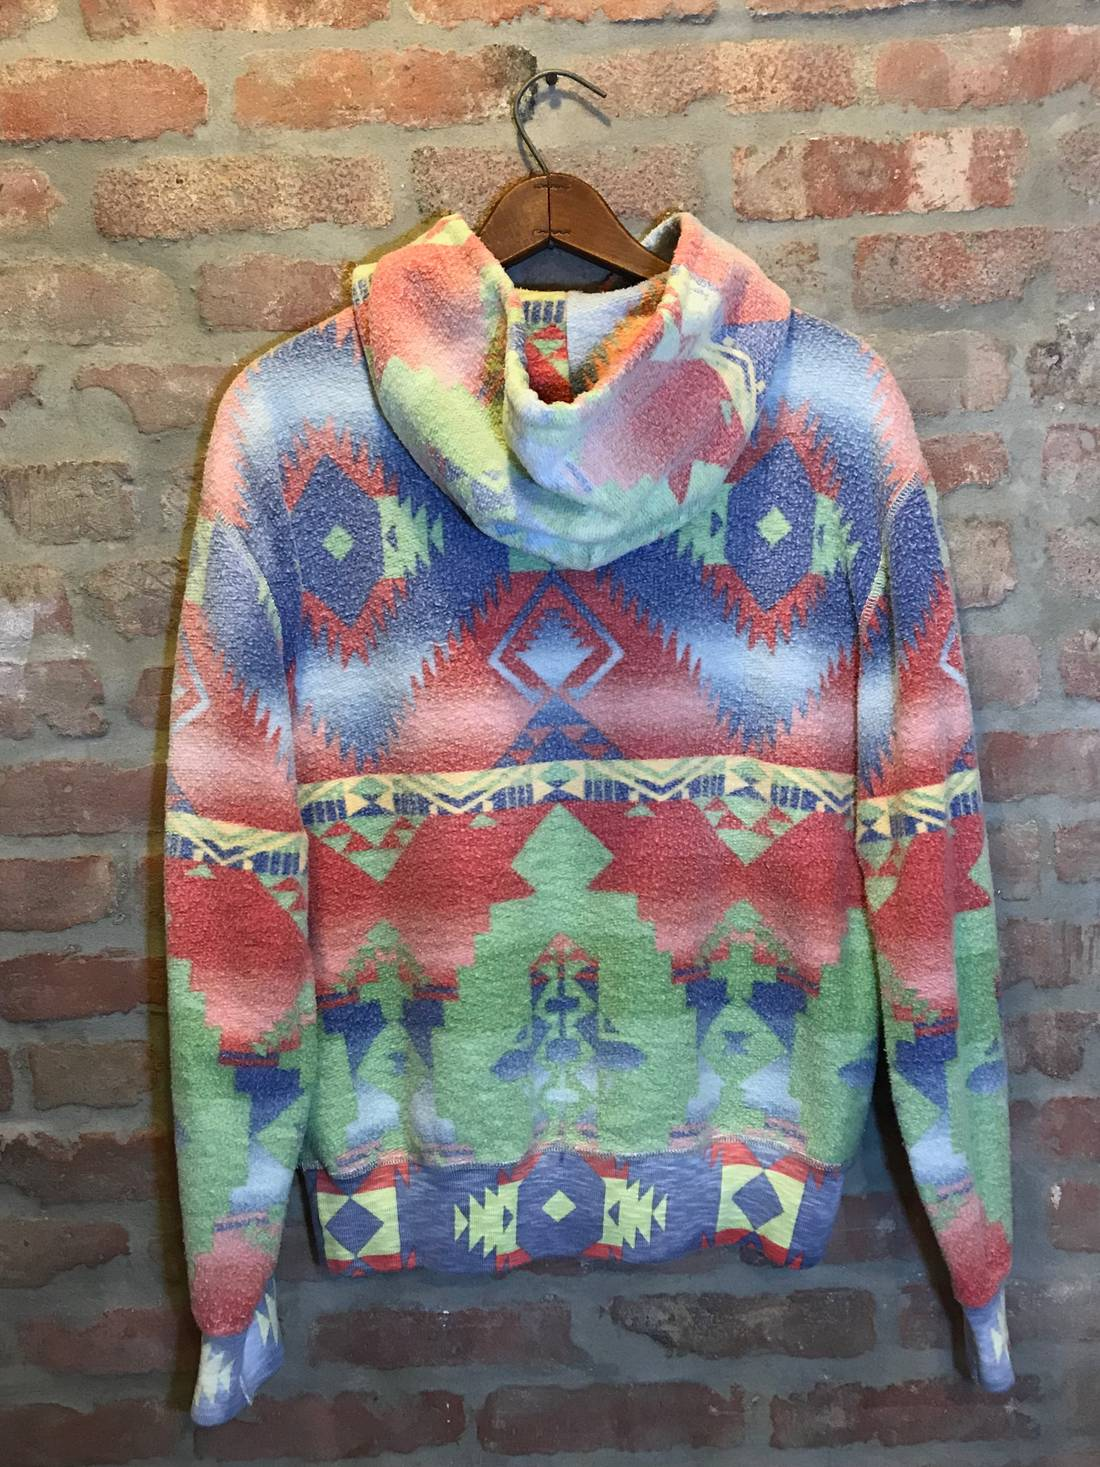 2c71e0a24d ... xl eu 56 4 4 0393c 92405  coupon code for polo ralph lauren polo ralph  lauren beacon navajo print hoodie medium size us